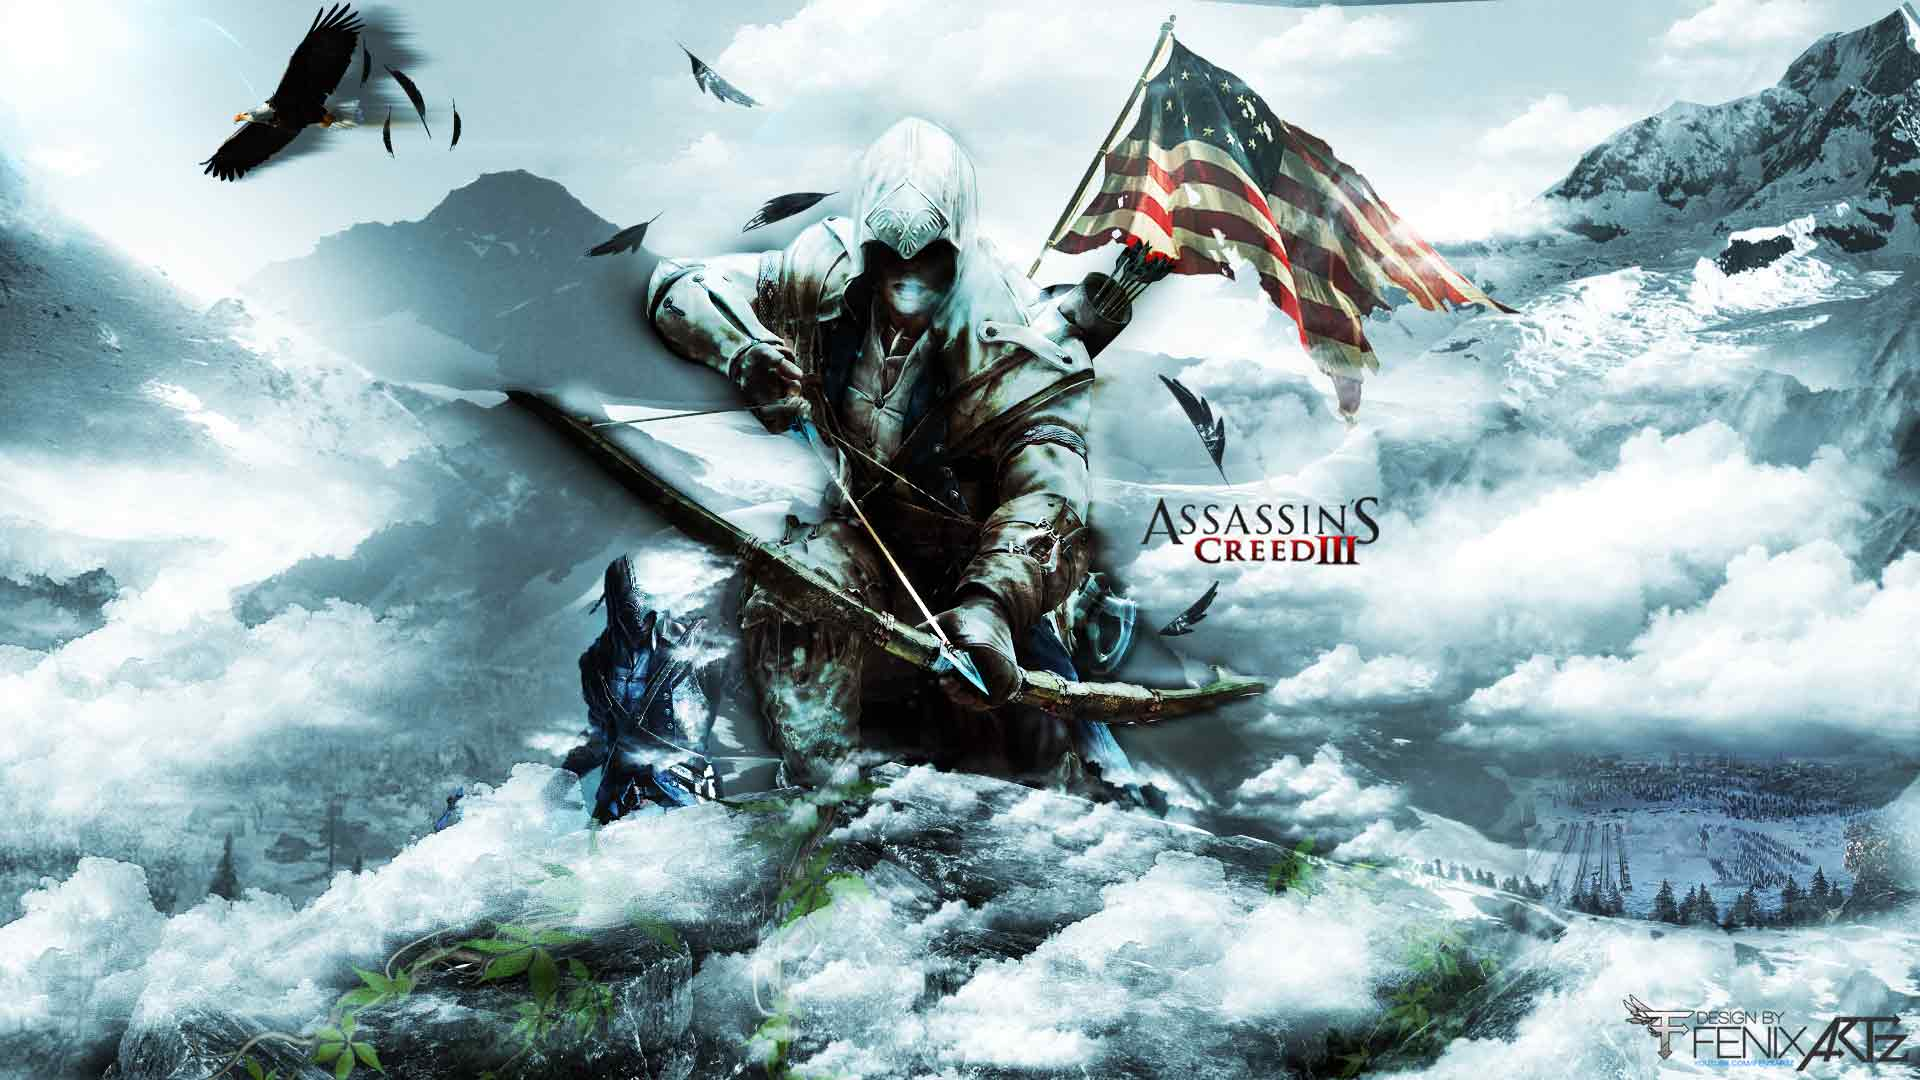 Assassin&Creed 3 Wallpapers 1920 X 1080 Wallpapers